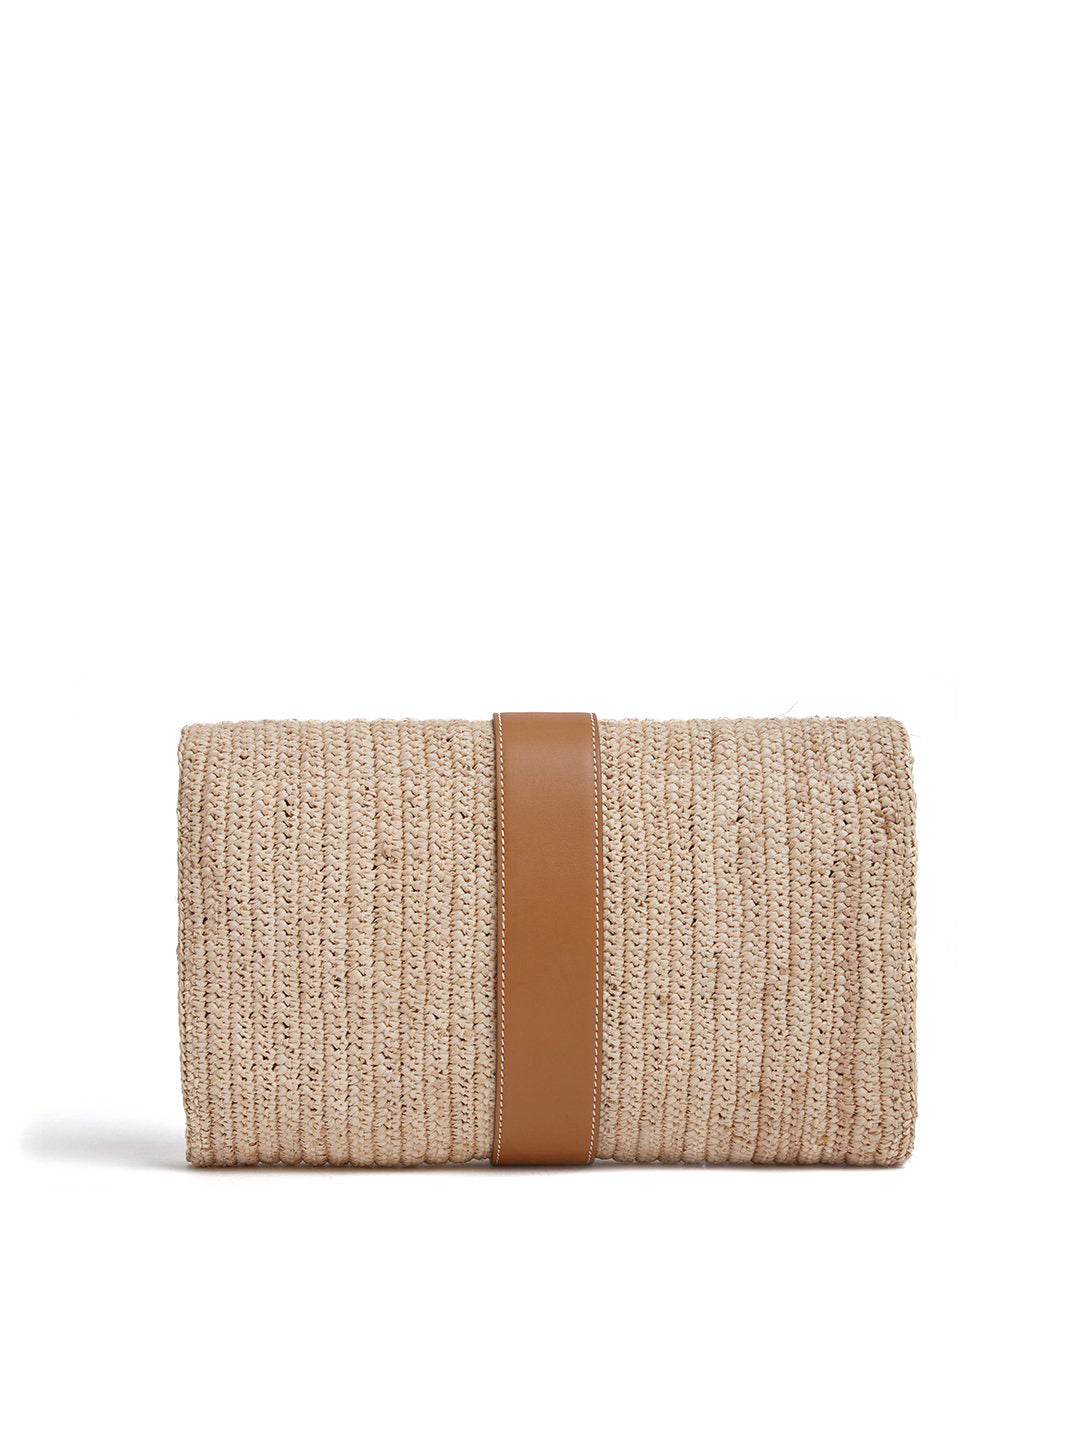 Mark Cross Sylvette Raffia & Leather Clutch Smooth Calf Luggage / Natural Raffia Back